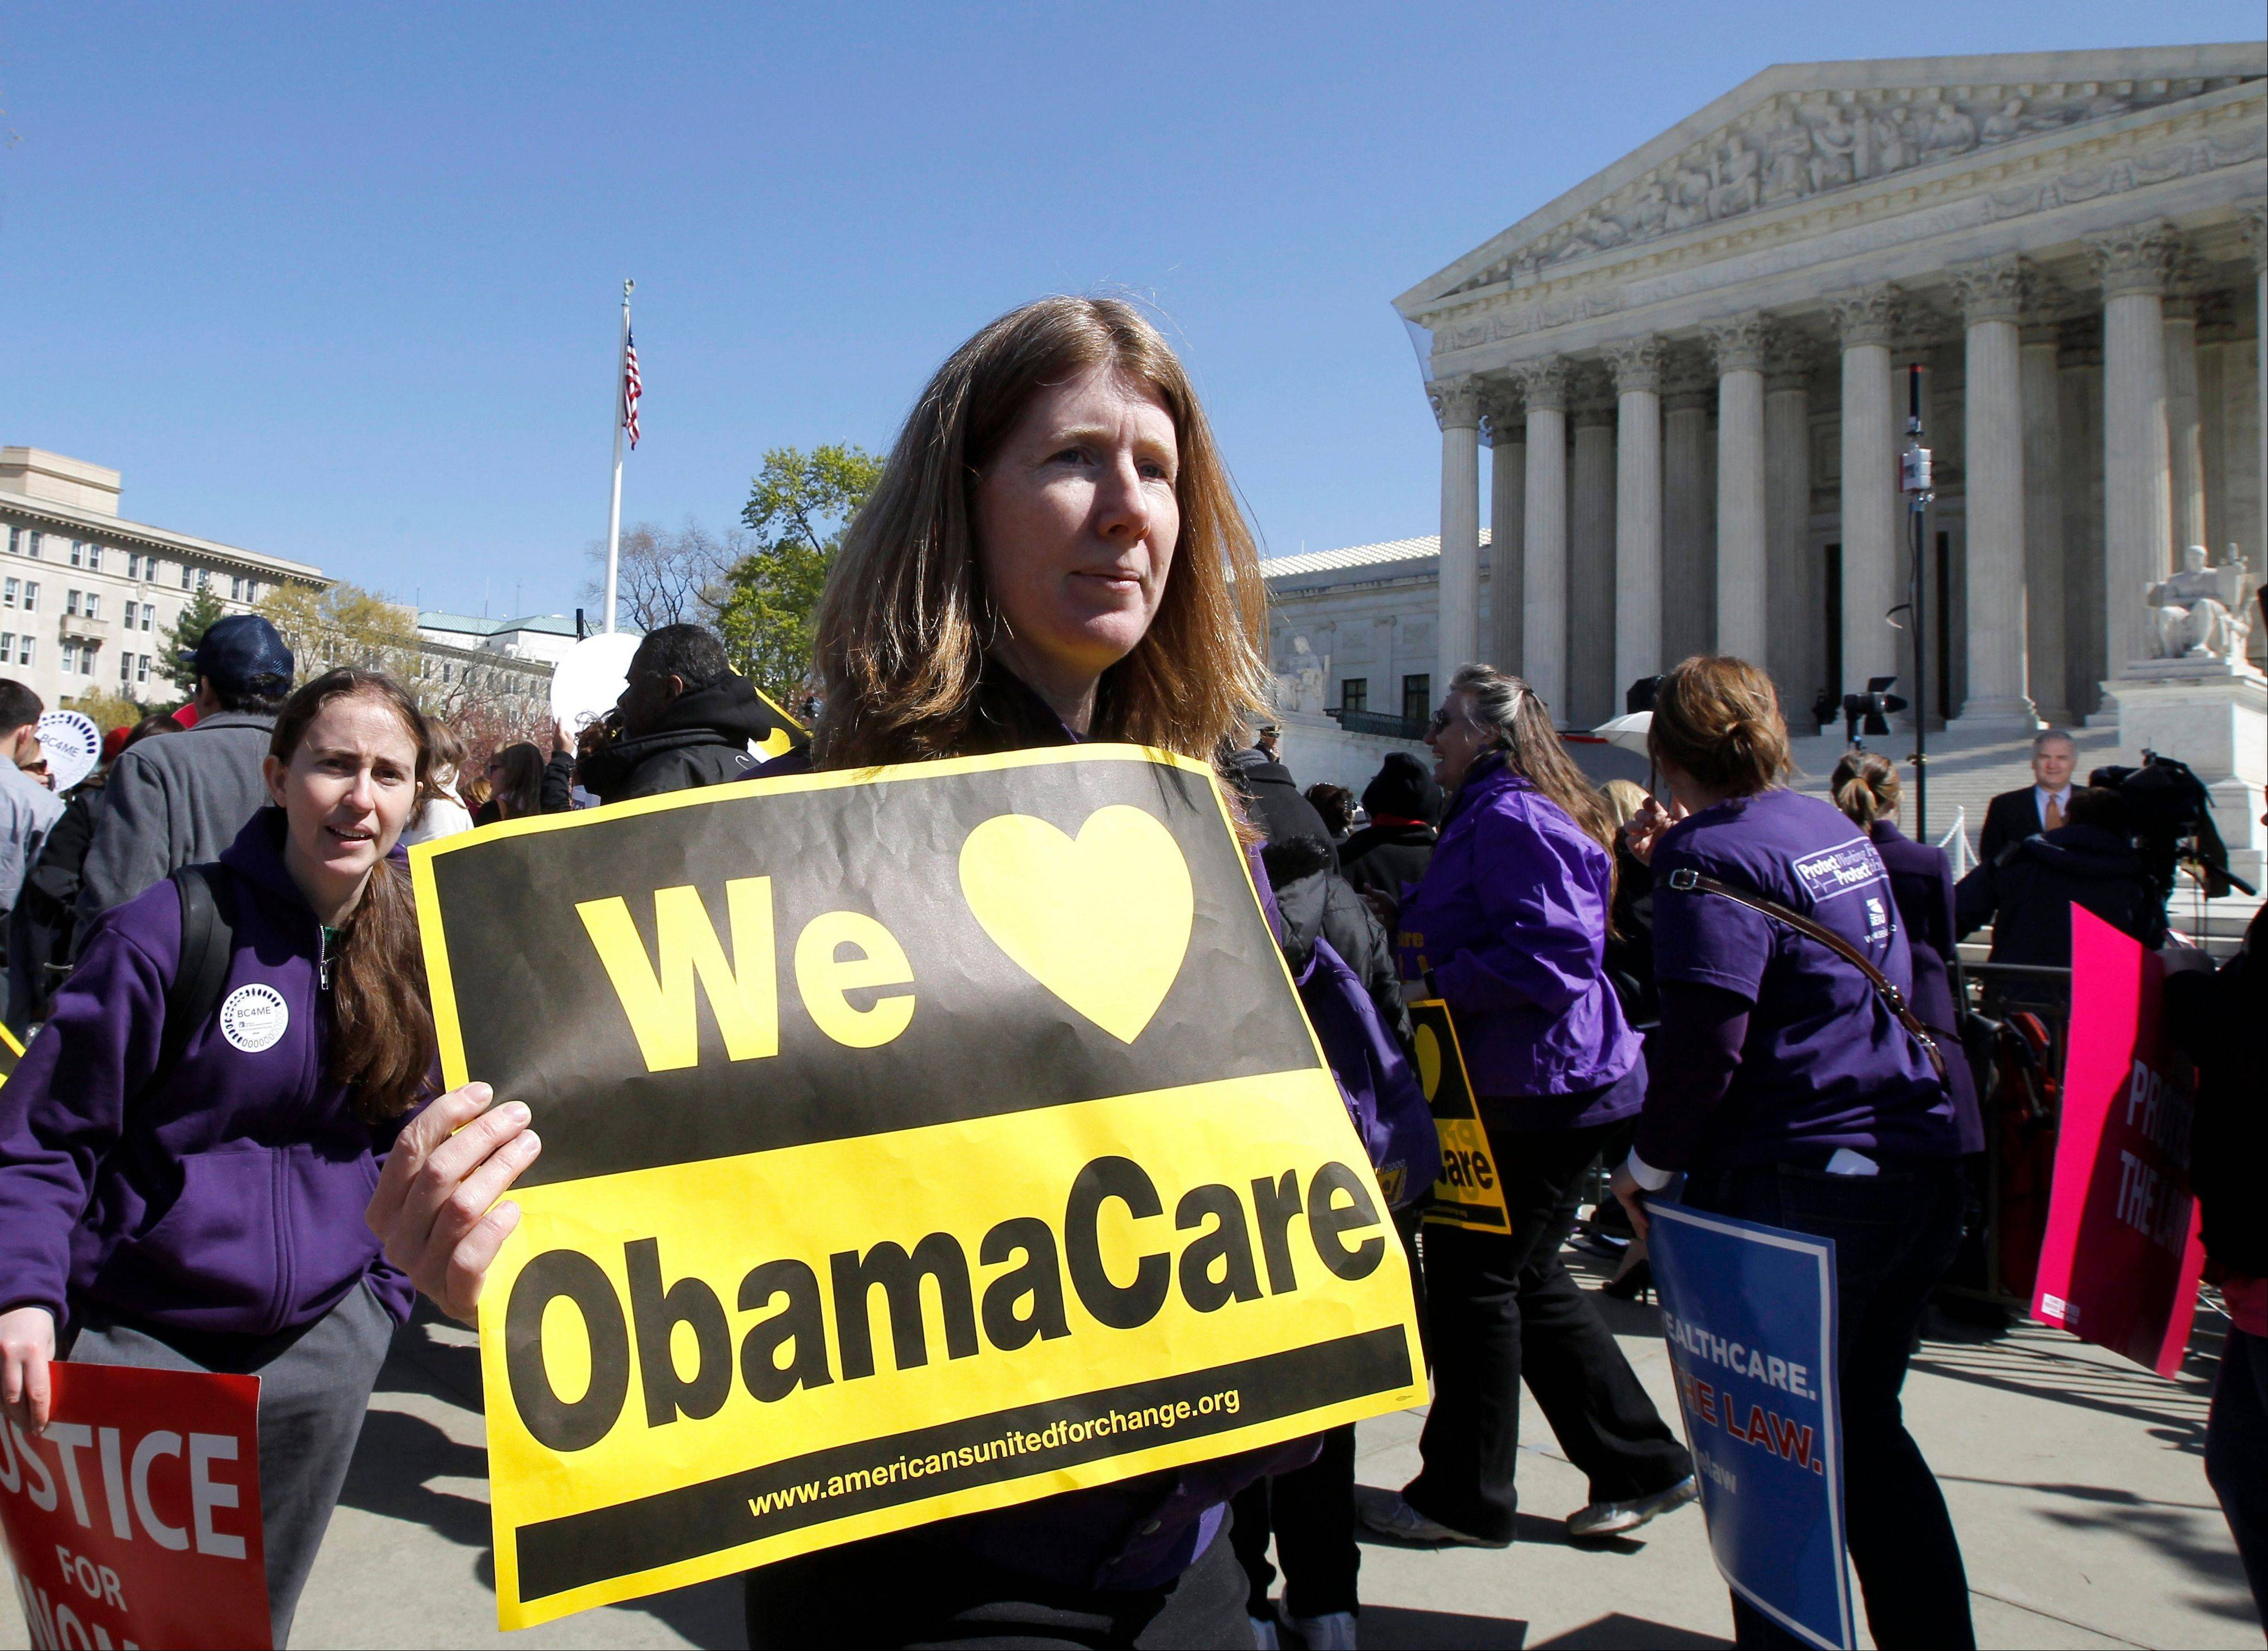 Talk with the Editor: Is 'Obamacare' a label or a pejorative?